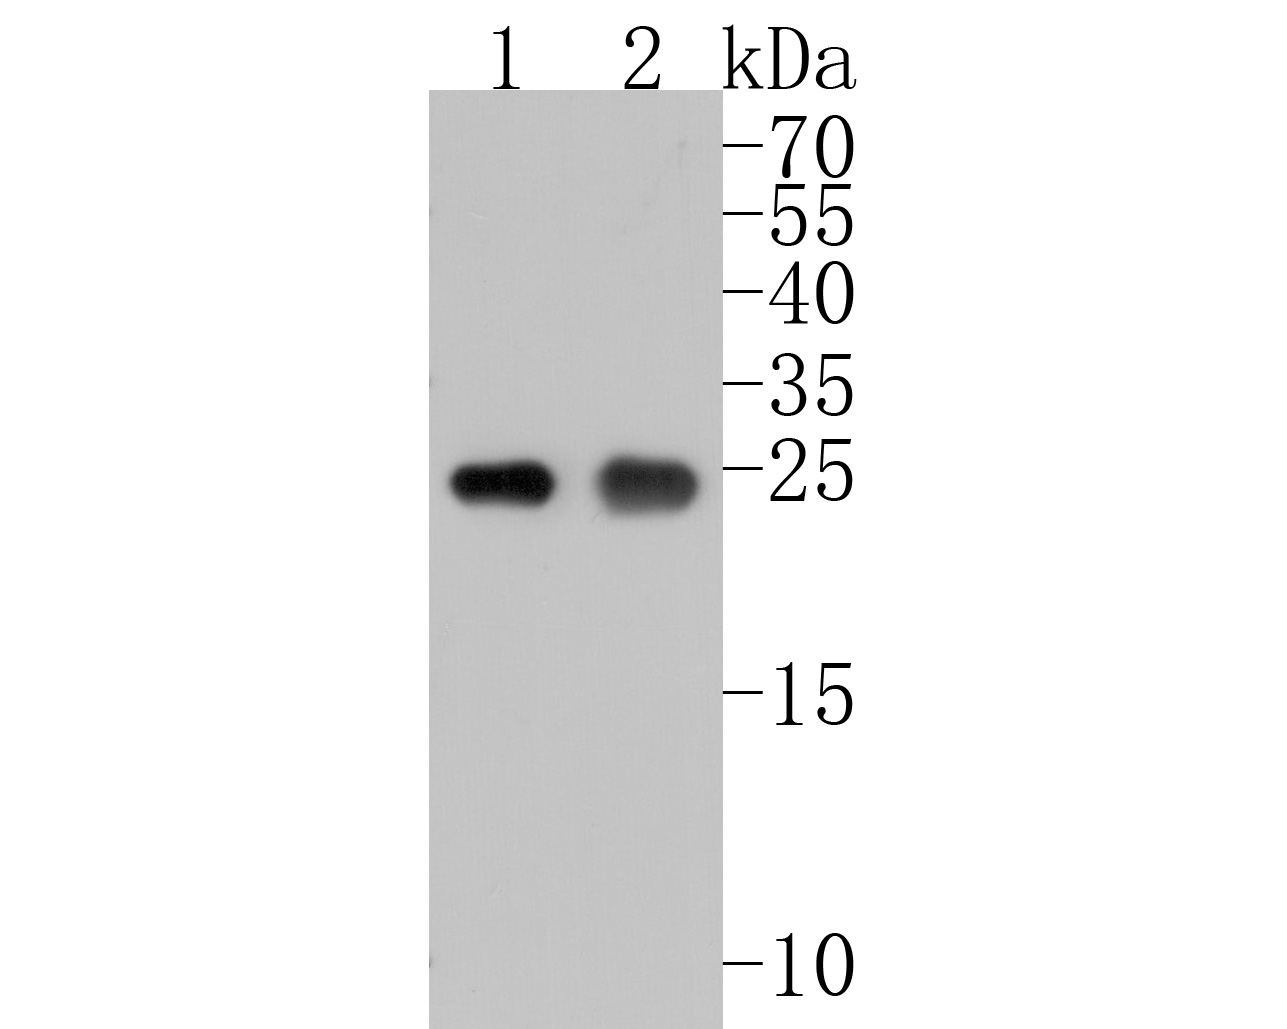 Western blot analysis of PGP9.5 on different lysates. Proteins were transferred to a PVDF membrane and blocked with 5% BSA in PBS for 1 hour at room temperature. The primary antibody (ET1703-22, 1/500) was used in 5% BSA at room temperature for 2 hours. Goat Anti-Rabbit IgG - HRP Secondary Antibody (HA1001) at 1:5,000 dilution was used for 1 hour at room temperature.<br /> Positive control: <br /> Lane 1: A549 cell lysate<br /> Lane 2: 293T cell lysate